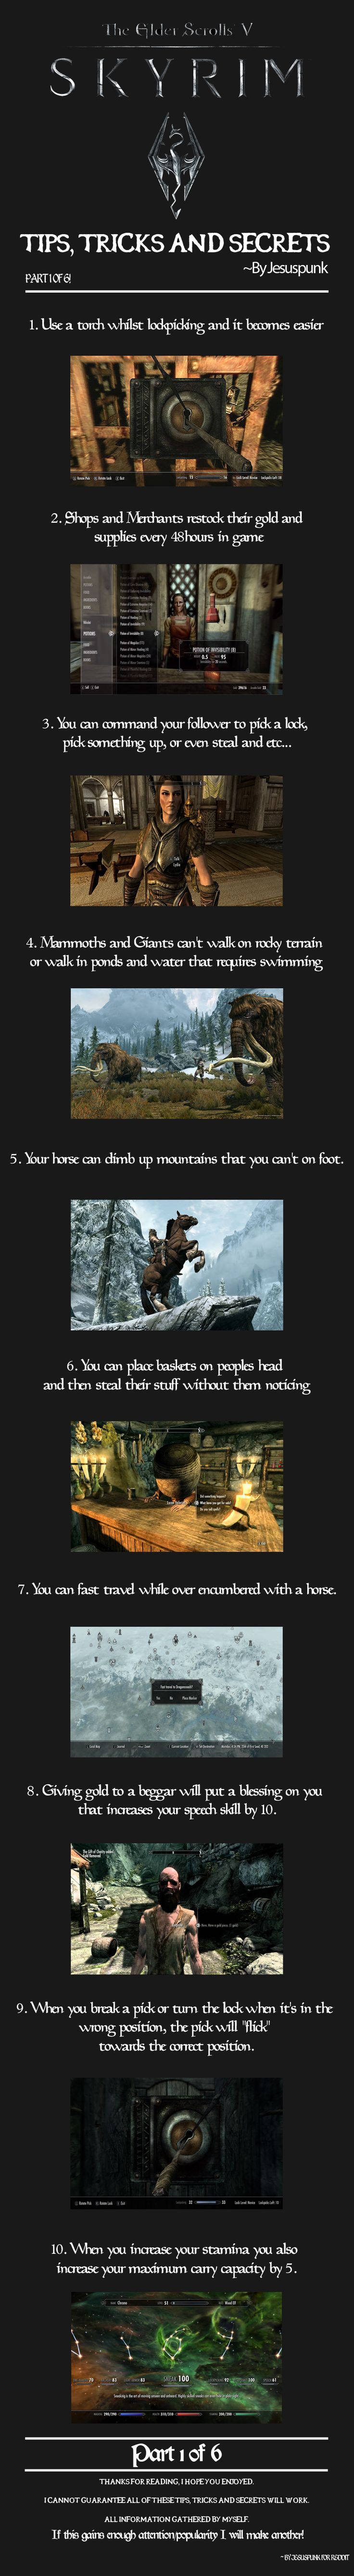 Eh, many of these I knew and/or are pointless. Who needs tricks when you're already epic? Still, I'll repin it. :P